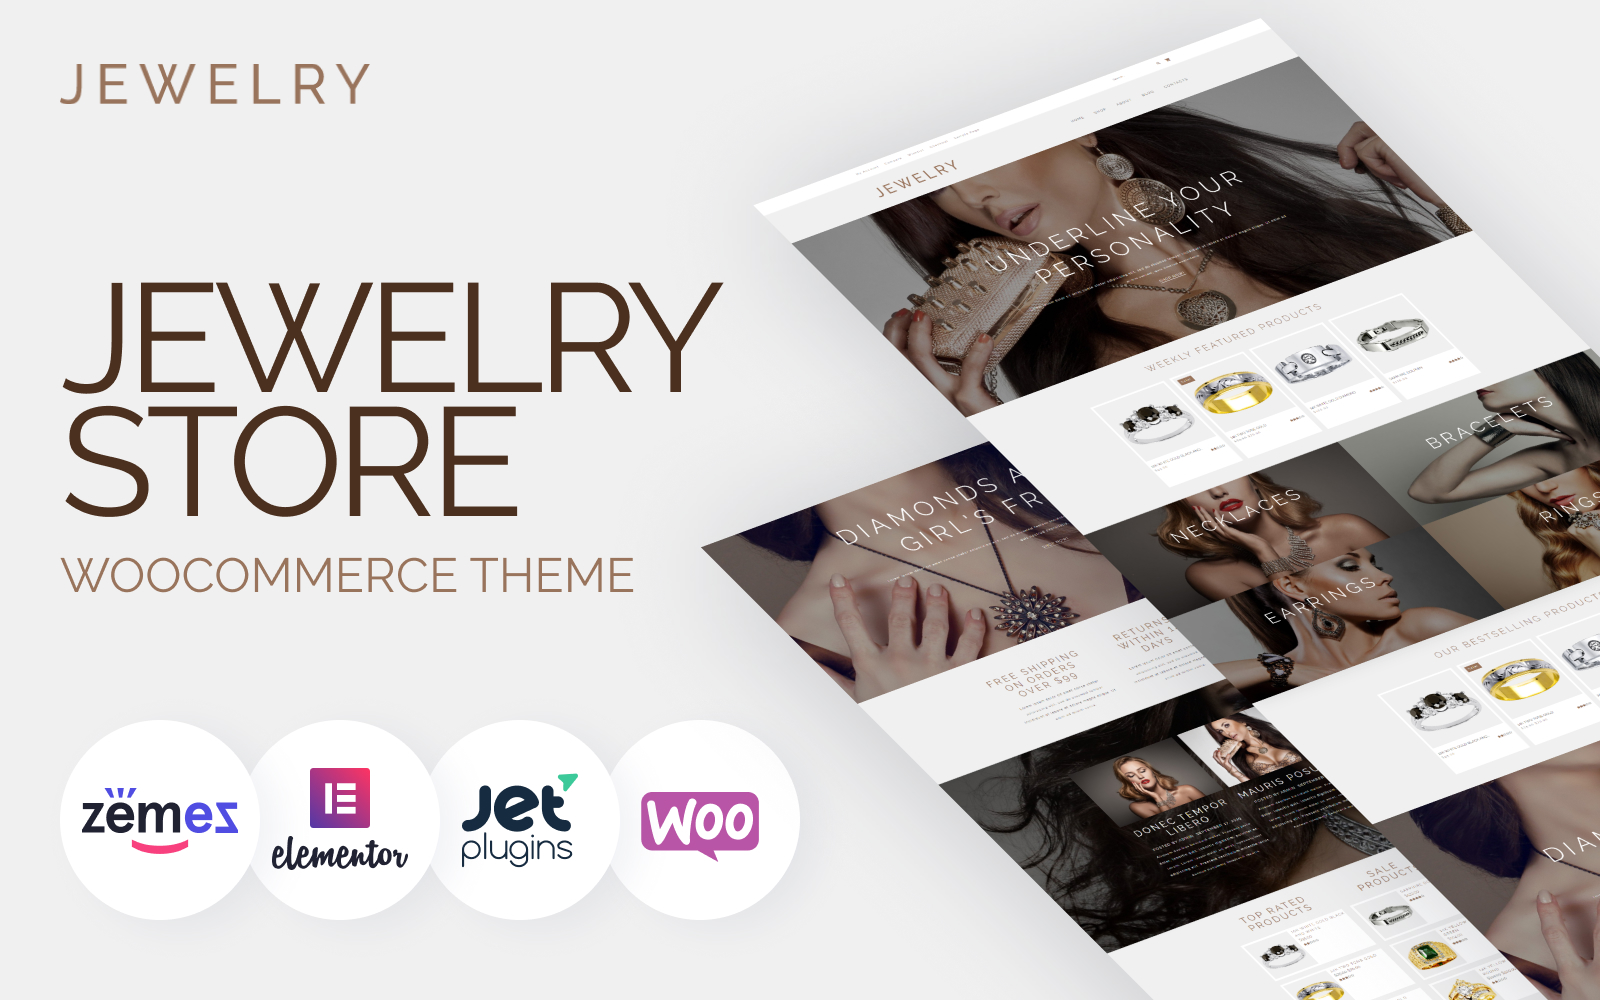 Jewelry - Jewelry Website Design Template for Online Shops №53421 - скриншот